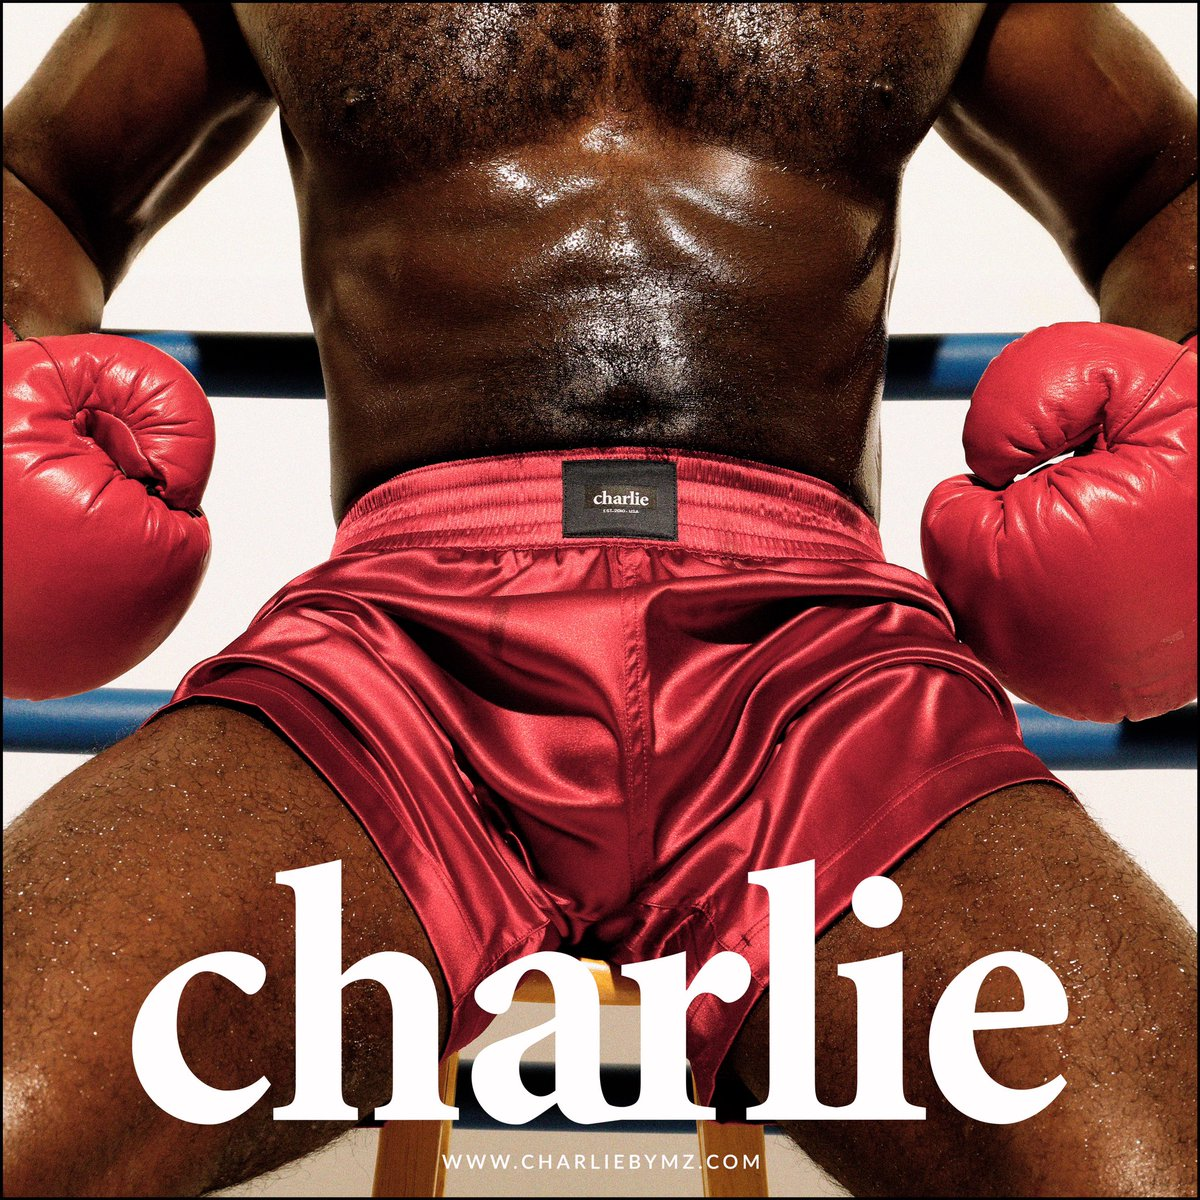 KNOCKOUT. The Charlie Fitness Boxing Series. Featuring the Kickboxing Short in red stretch satin. SHOP NOW Exclusively at https://t.co/KkePkfVjnC. #Charliebymz#charliefan#forevercharlie#charliefitness #mens #fitness #boxing #shorts https://t.co/Gdsgclkle5